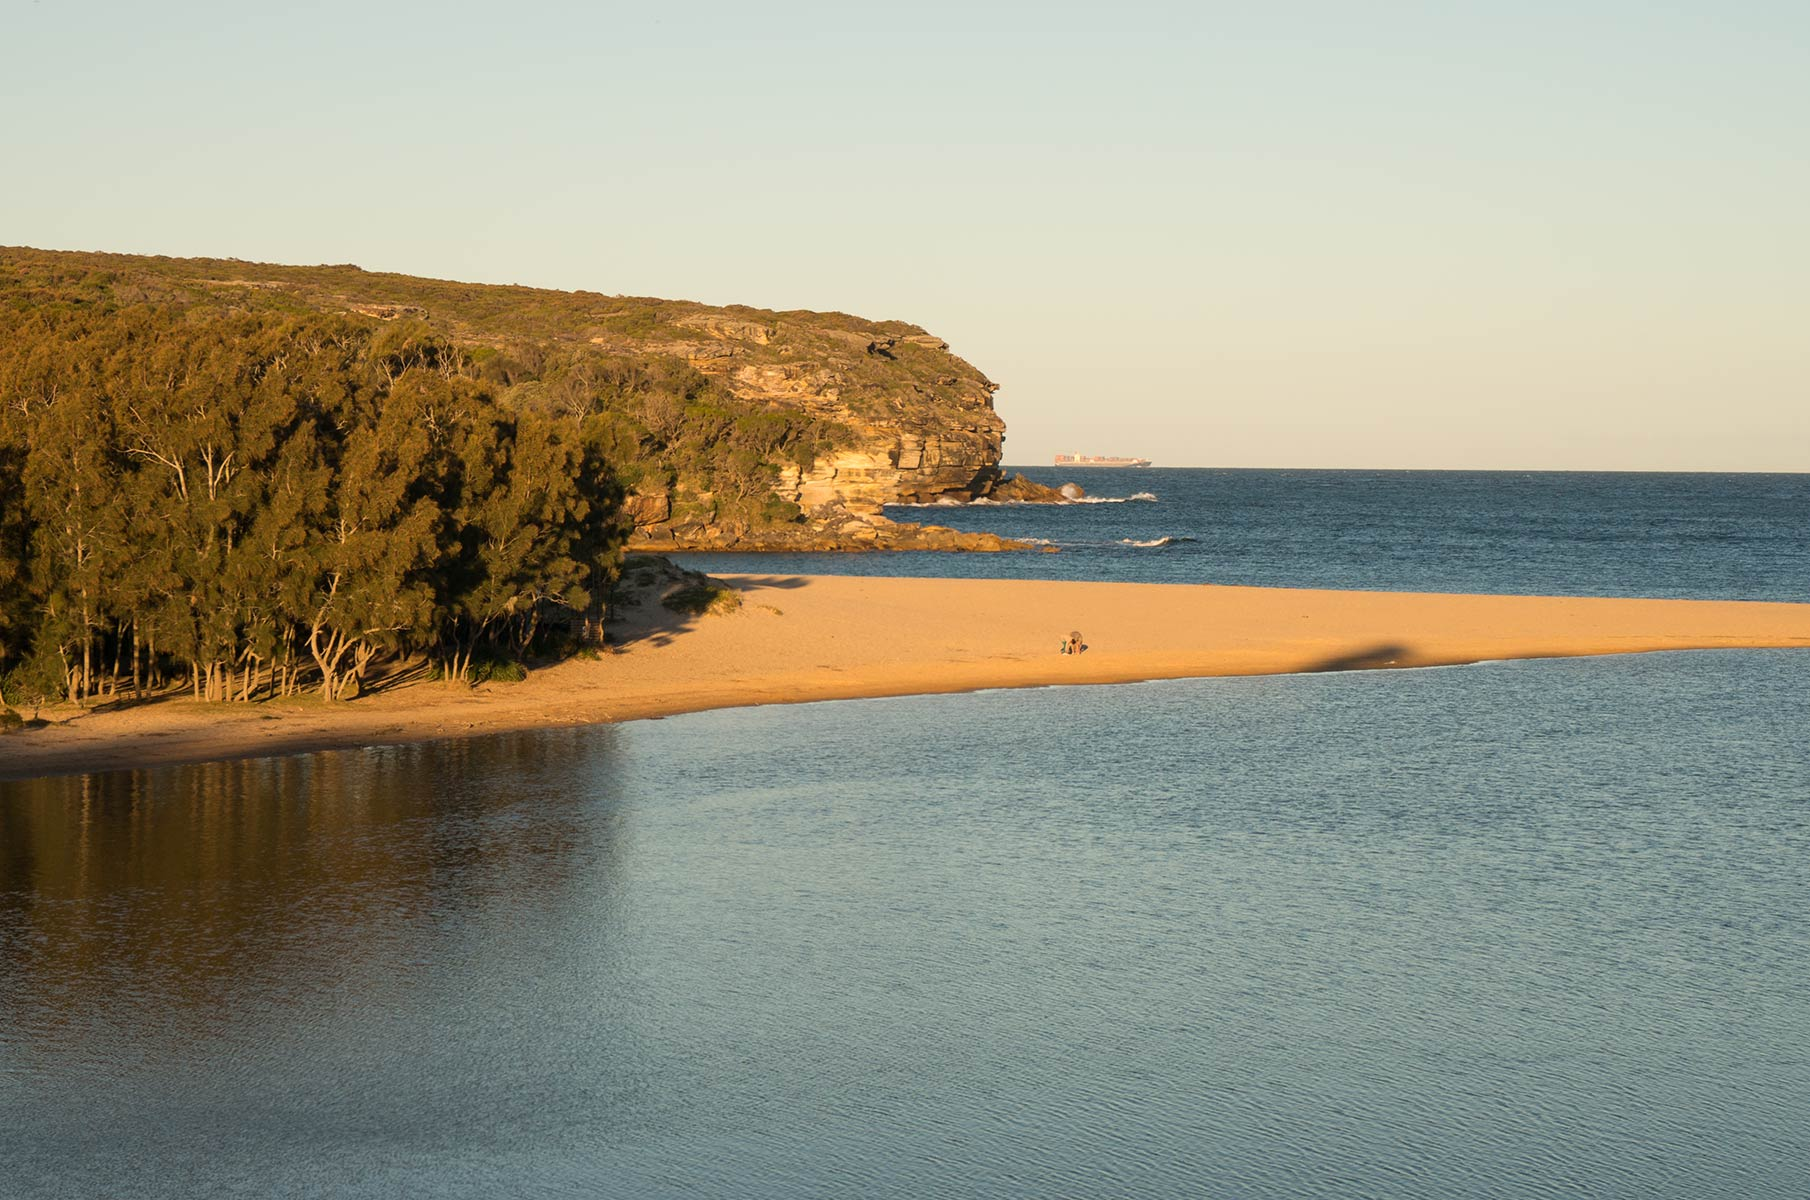 Wattamolla Beach im Royal National Park, Australien